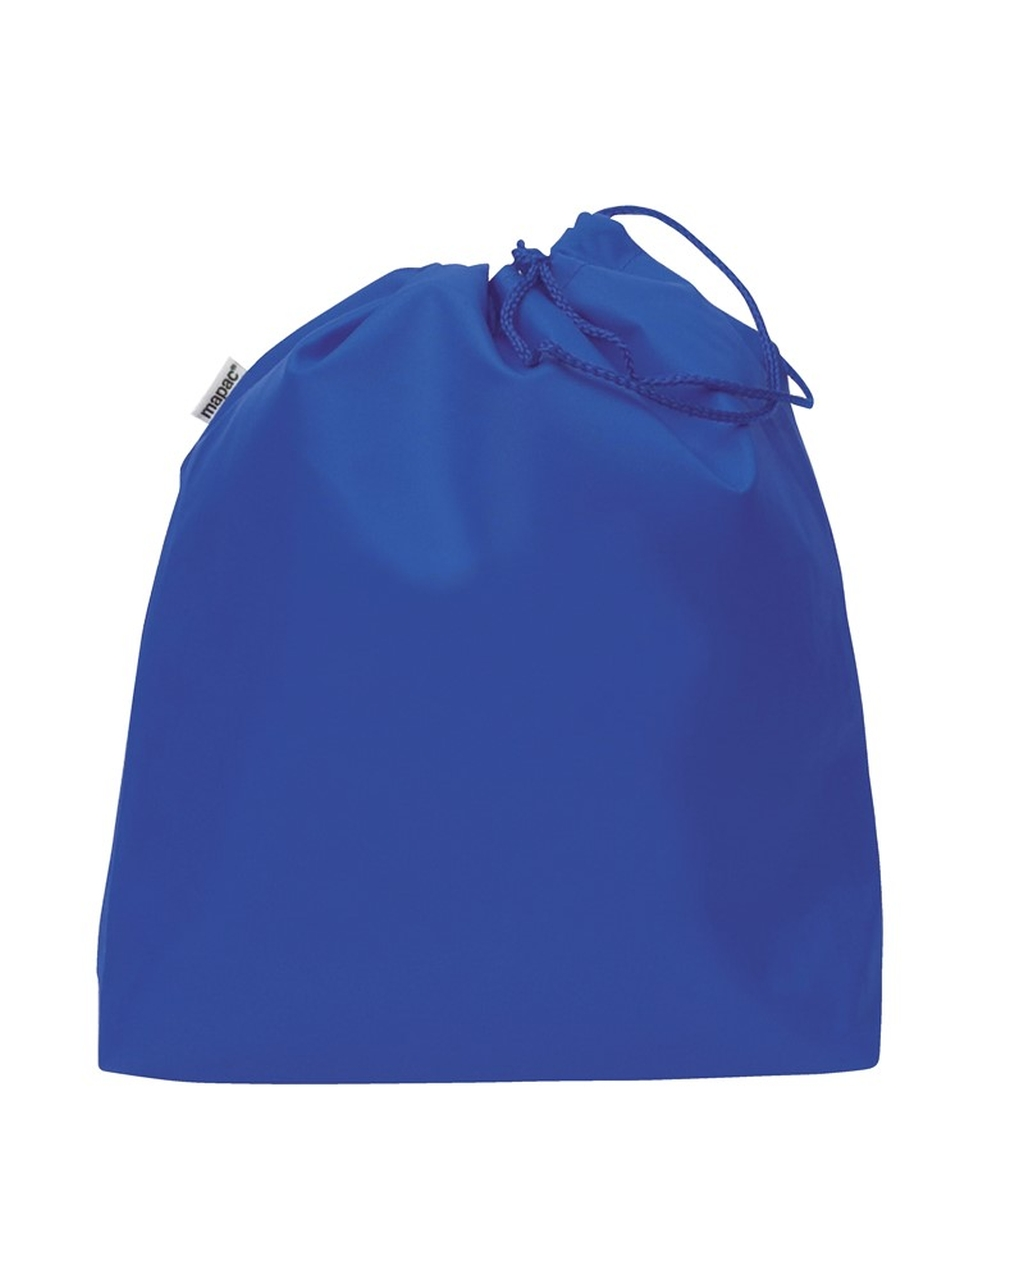 Back Bags 350 x 370mm - Royal Blue